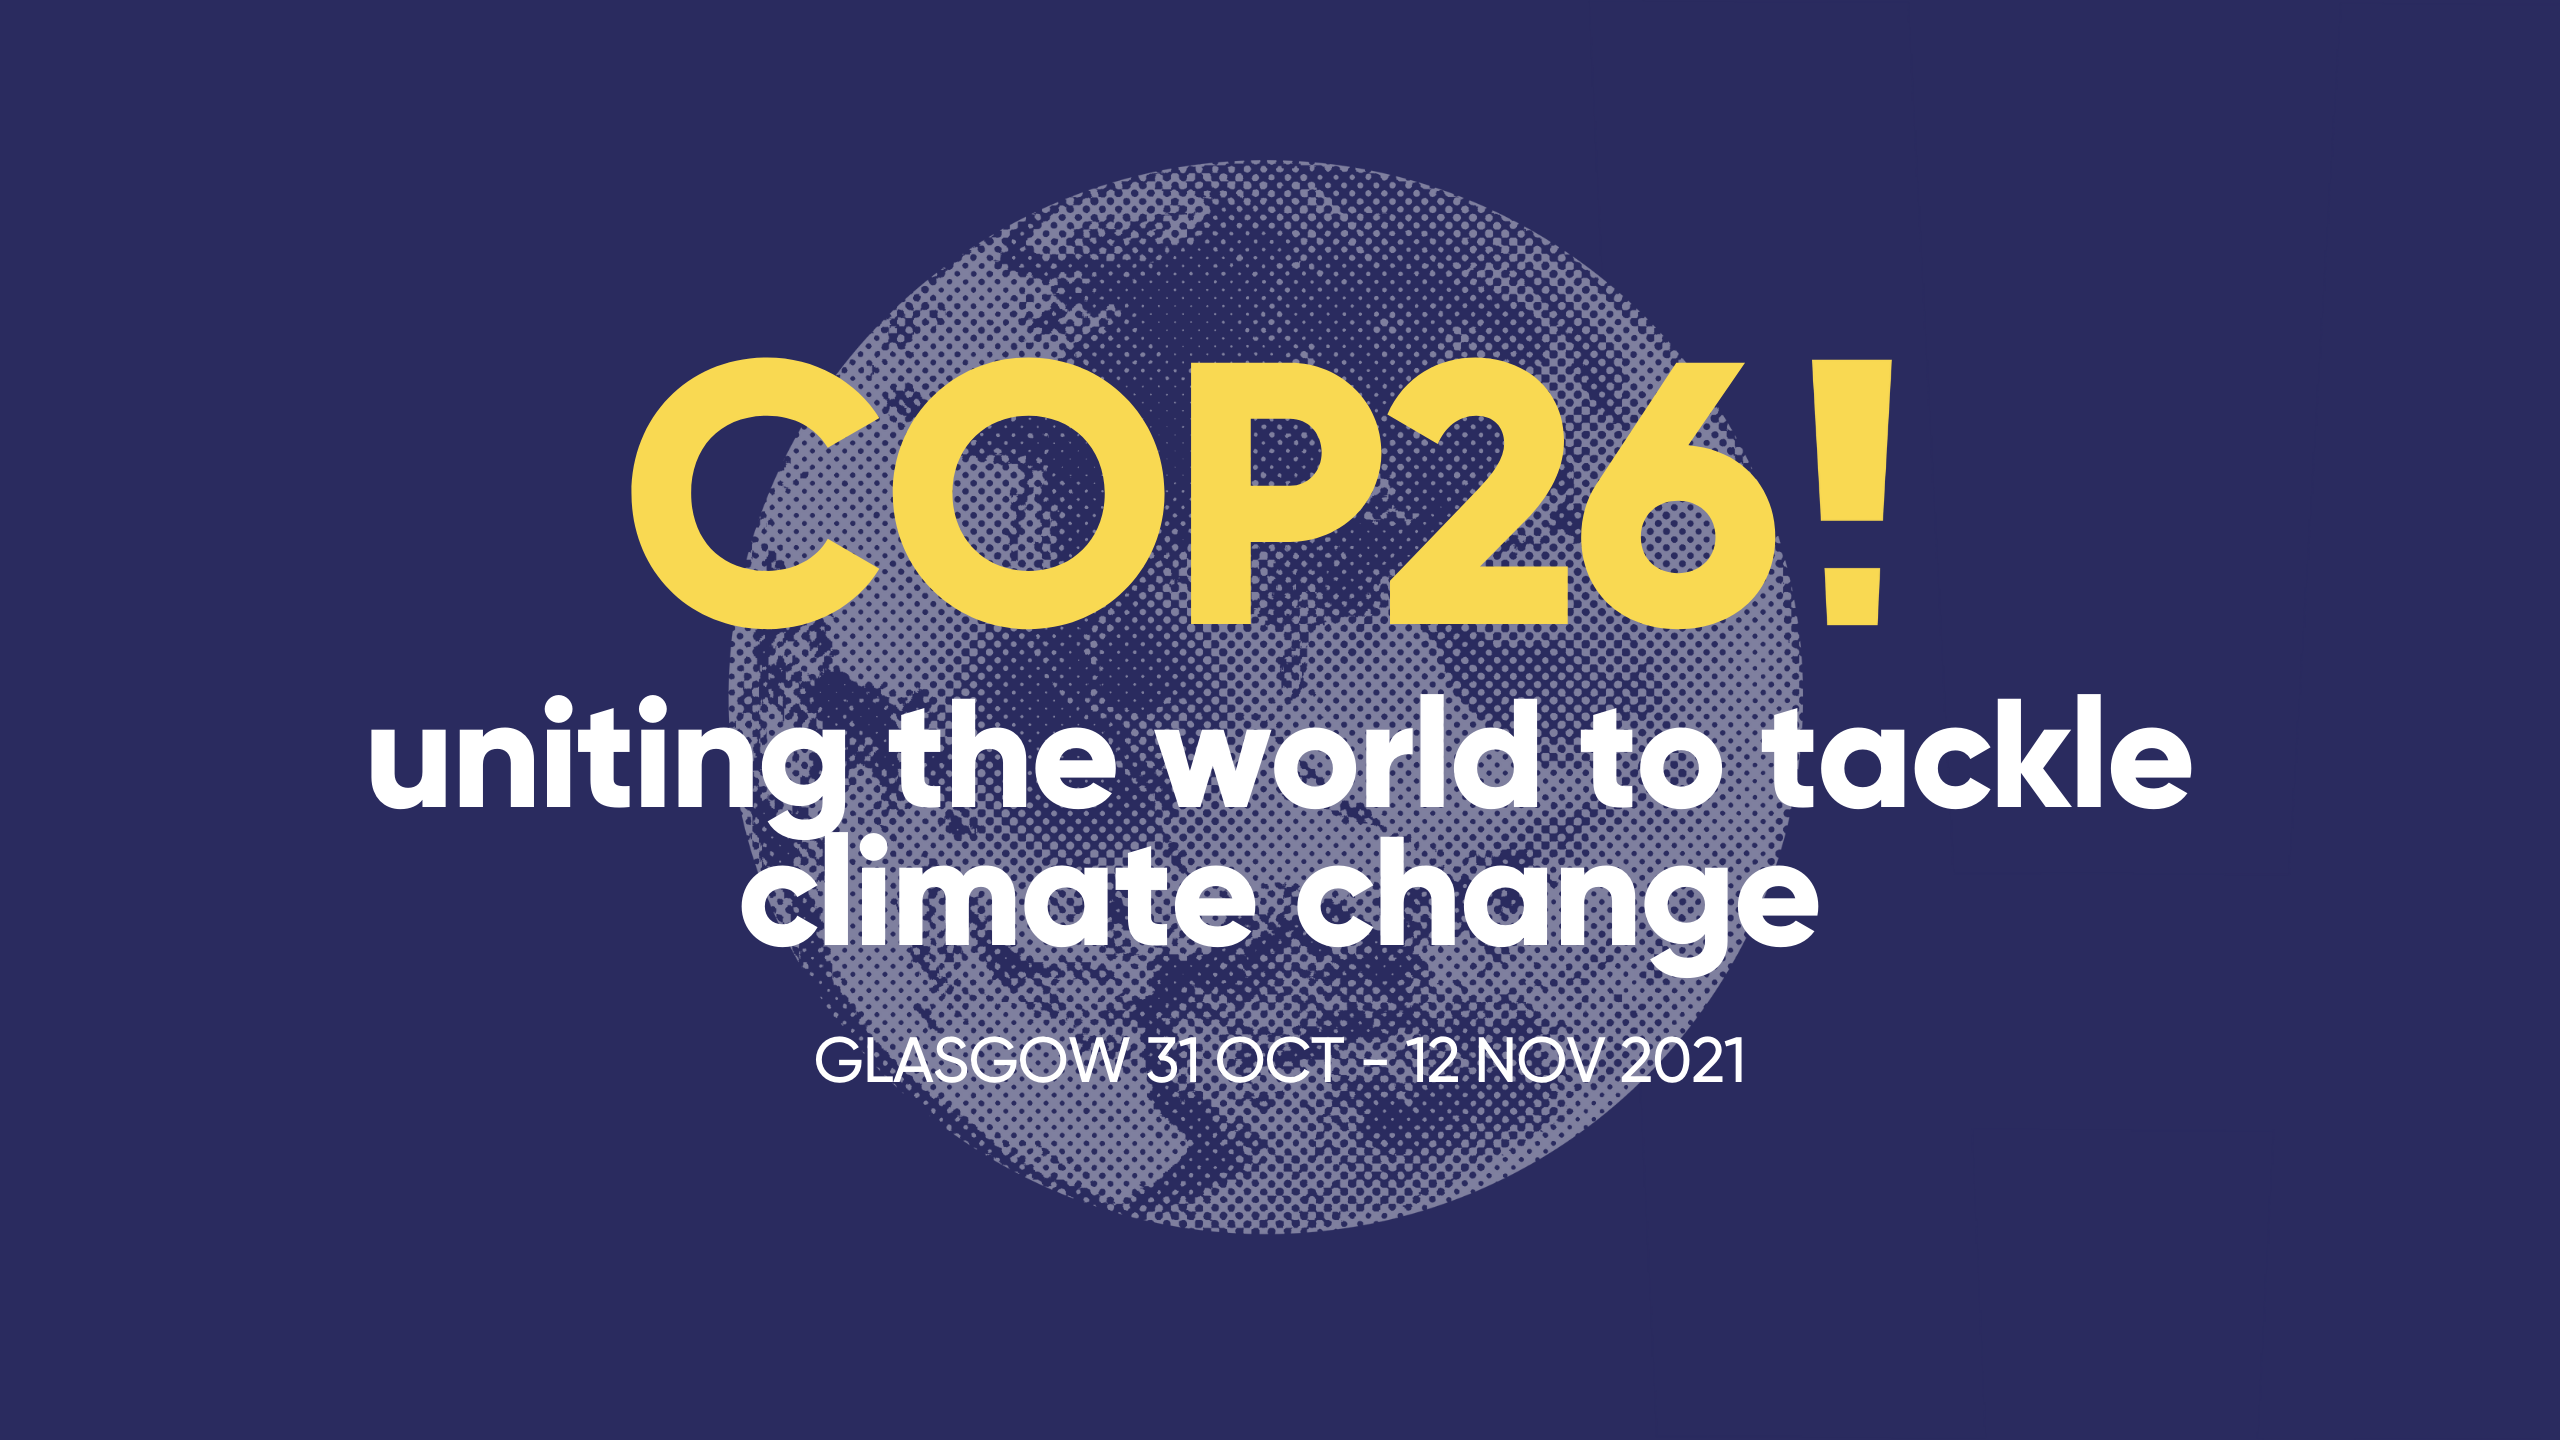 COP26: uniting the world to tackle climate change, glasgow 31st October - 12th november 2021